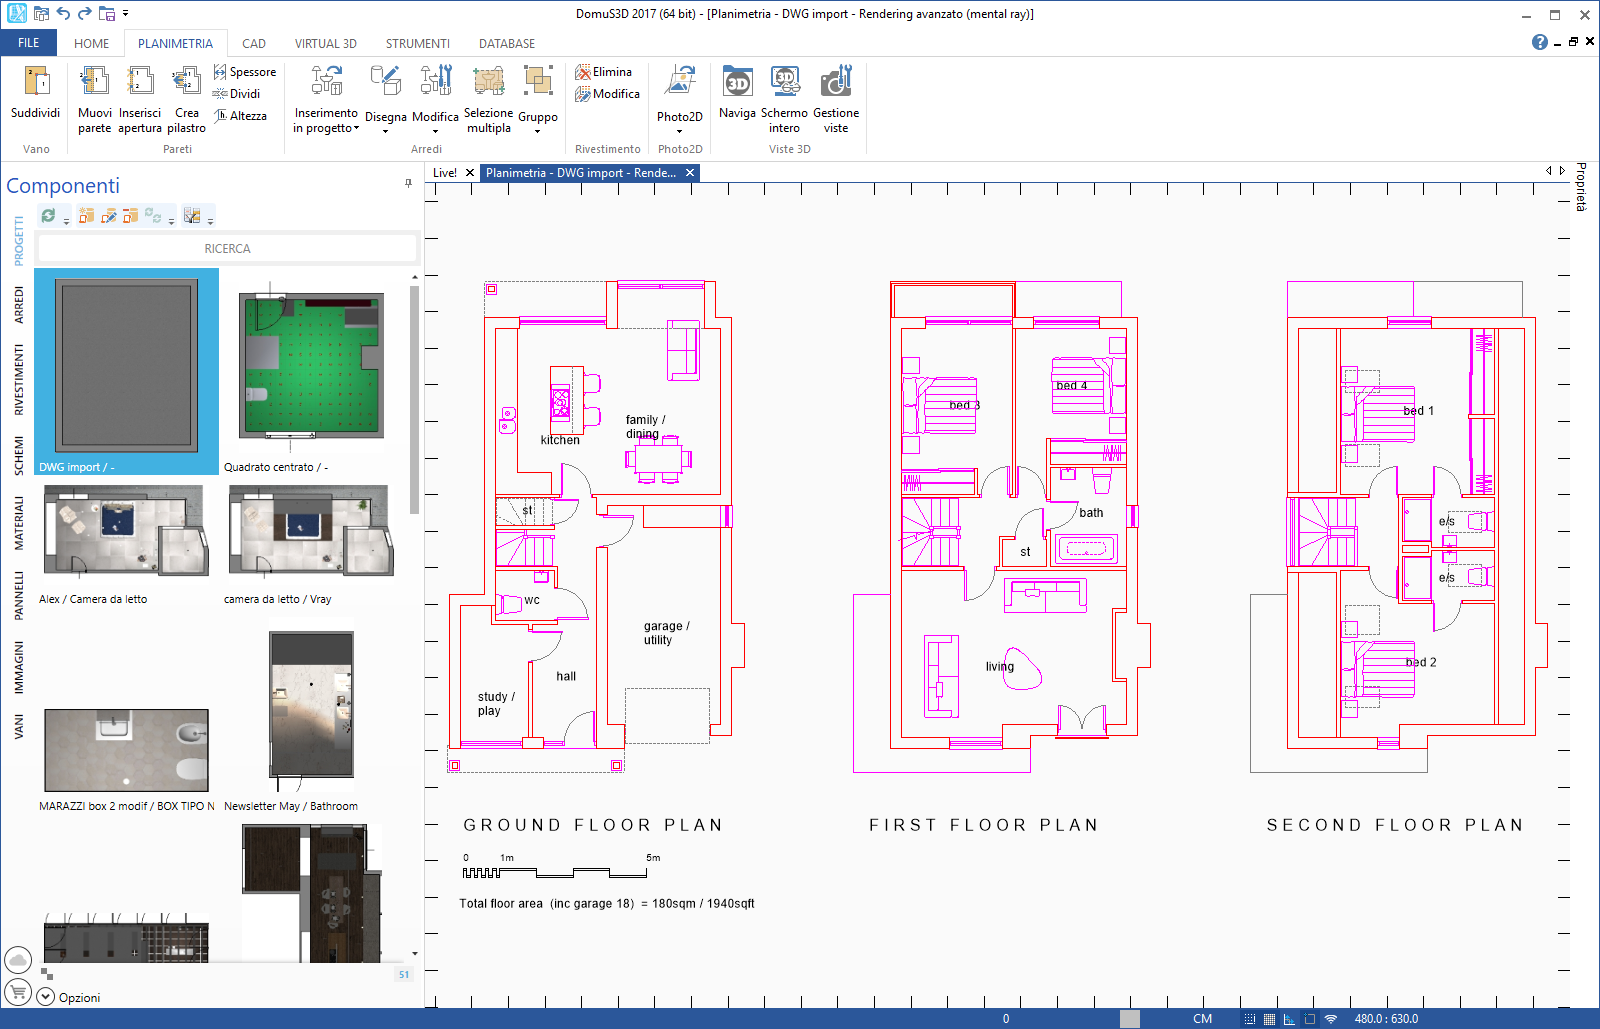 Import plan from a DWG (DXF) file – DomuS3D Online Support